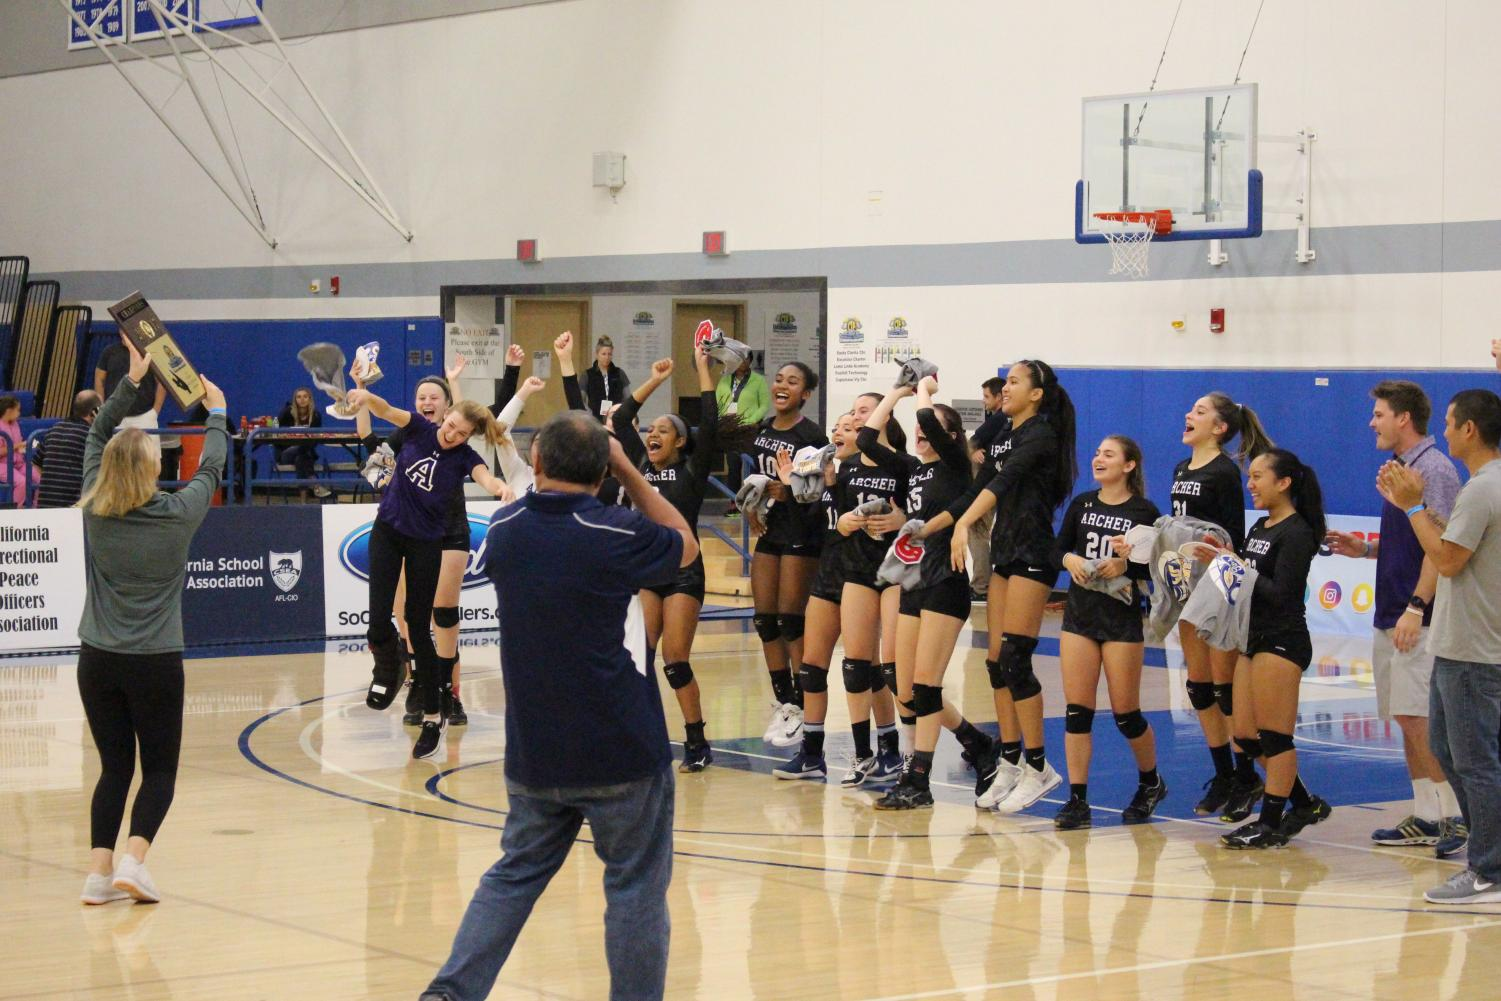 Record+Setting+Weekend%3A+Varsity+volleyball+wins+first+CIF-SS+title+in+school+history